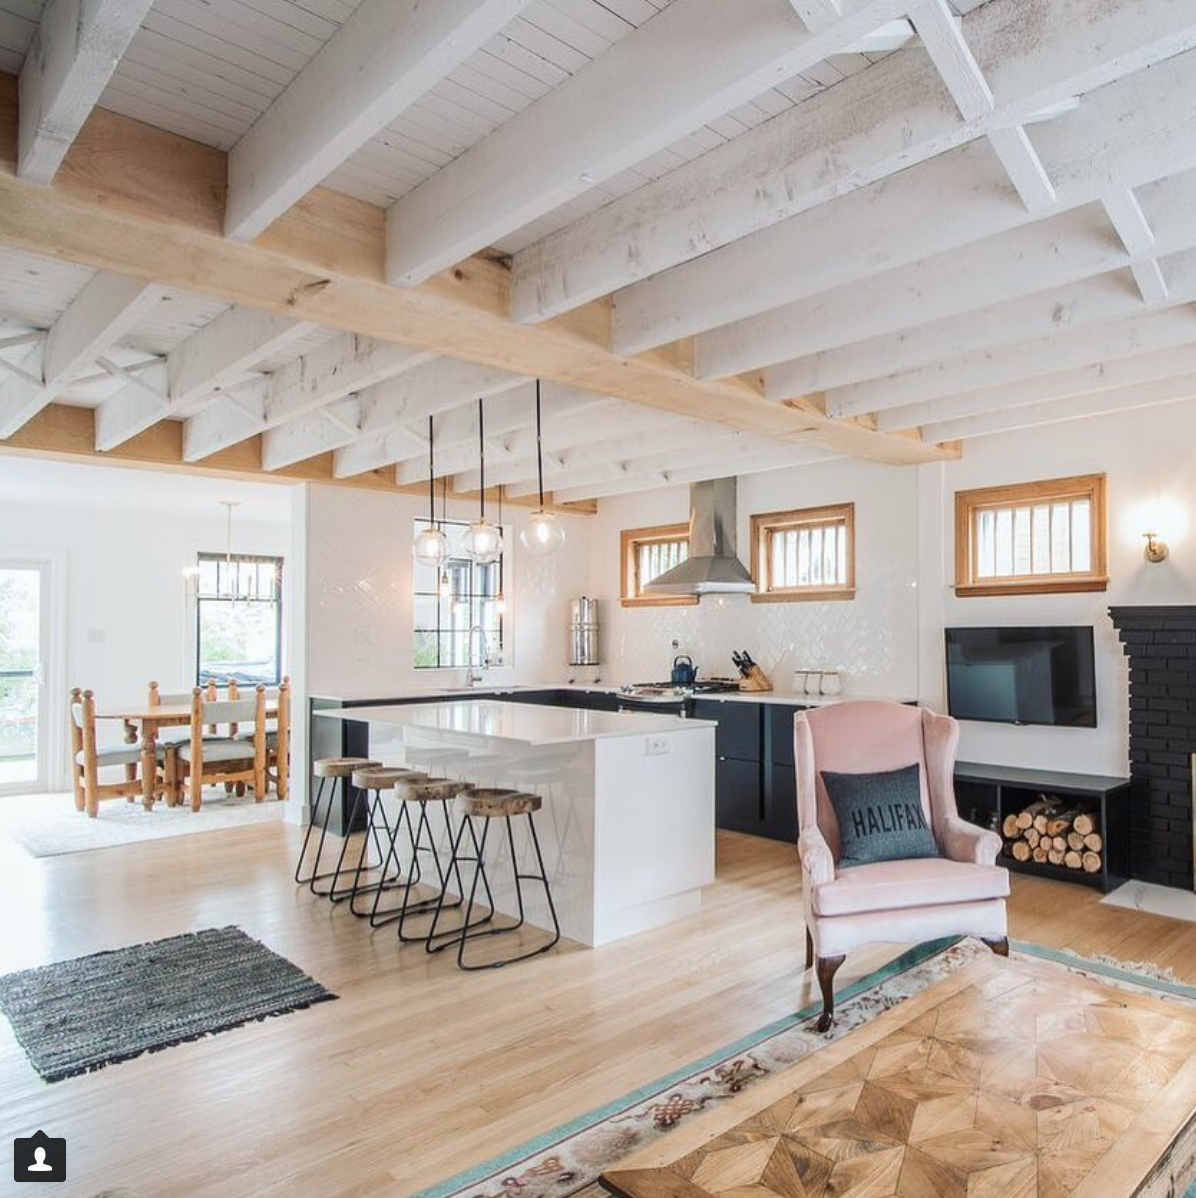 Boho Minimalist Open Concept Kitchen Rustic Glam And Design By Diy Mom Rustic Ceiling Painted Beams Vintage Interior Design